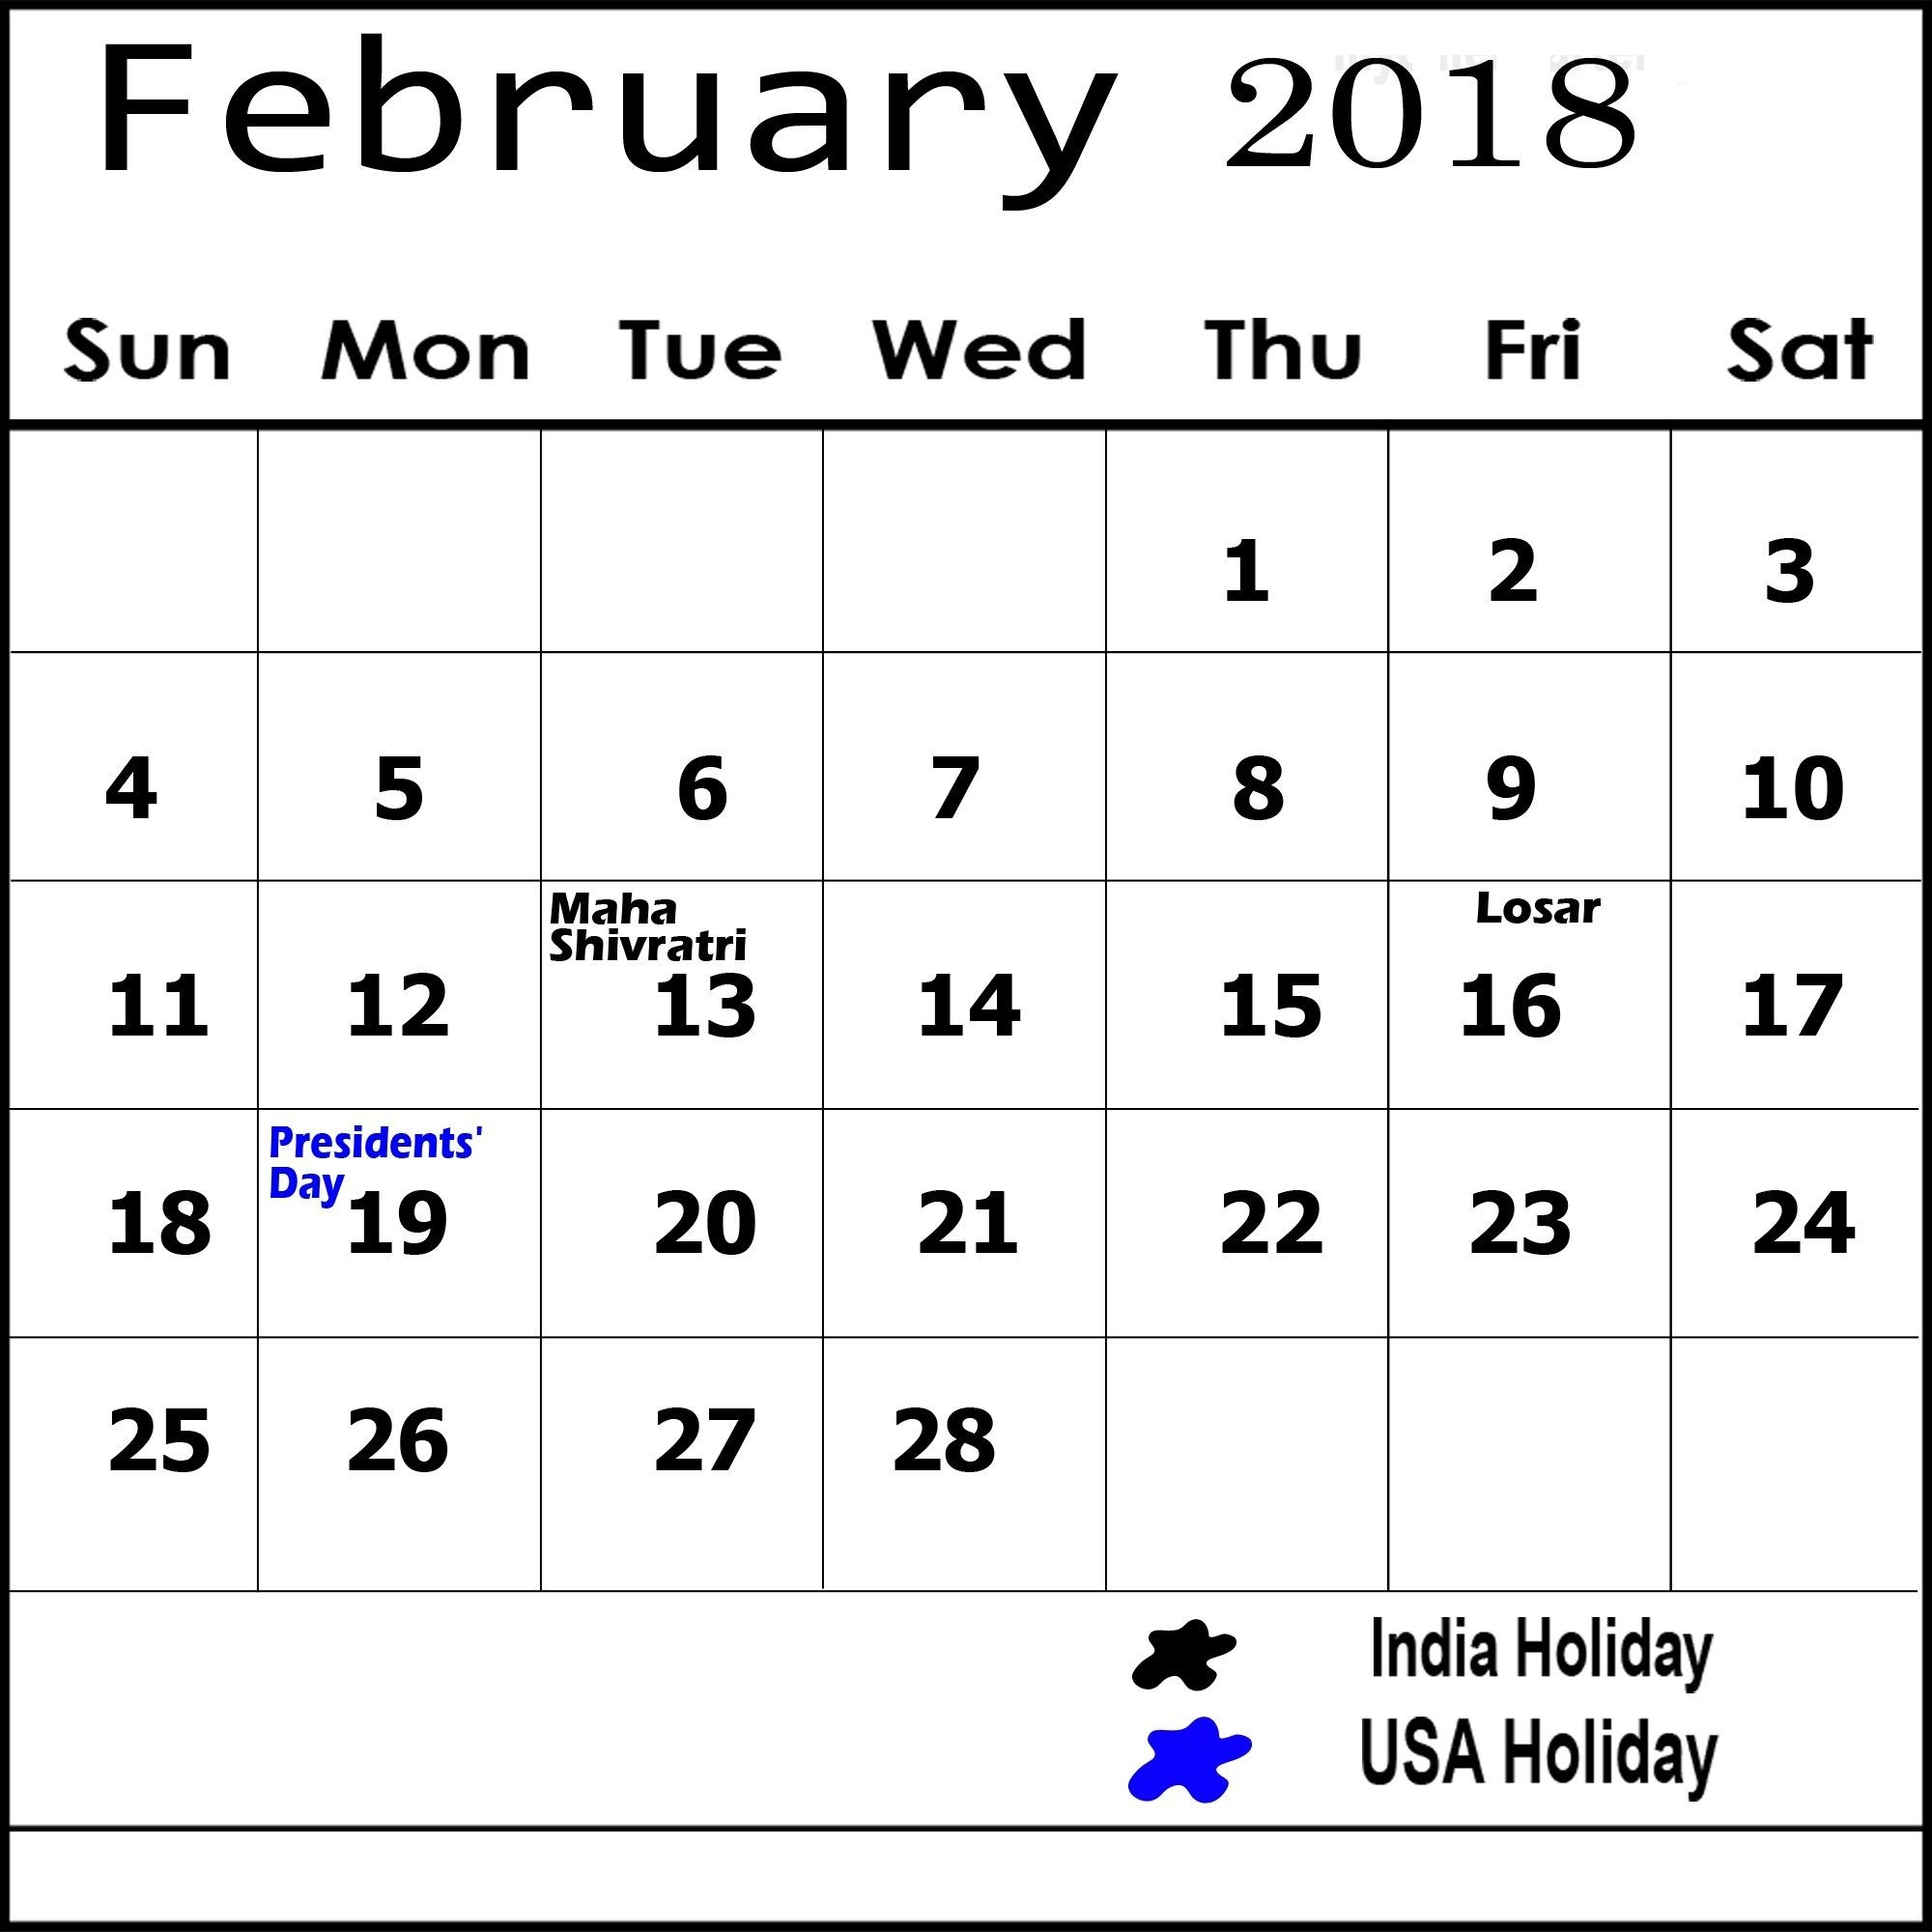 March 2019 Calendar India Más Arriba-a-fecha February 2019 Calendar India Of March 2019 Calendar India Más Recientemente Liberado Home the National Institute Of Open Schooling Nios